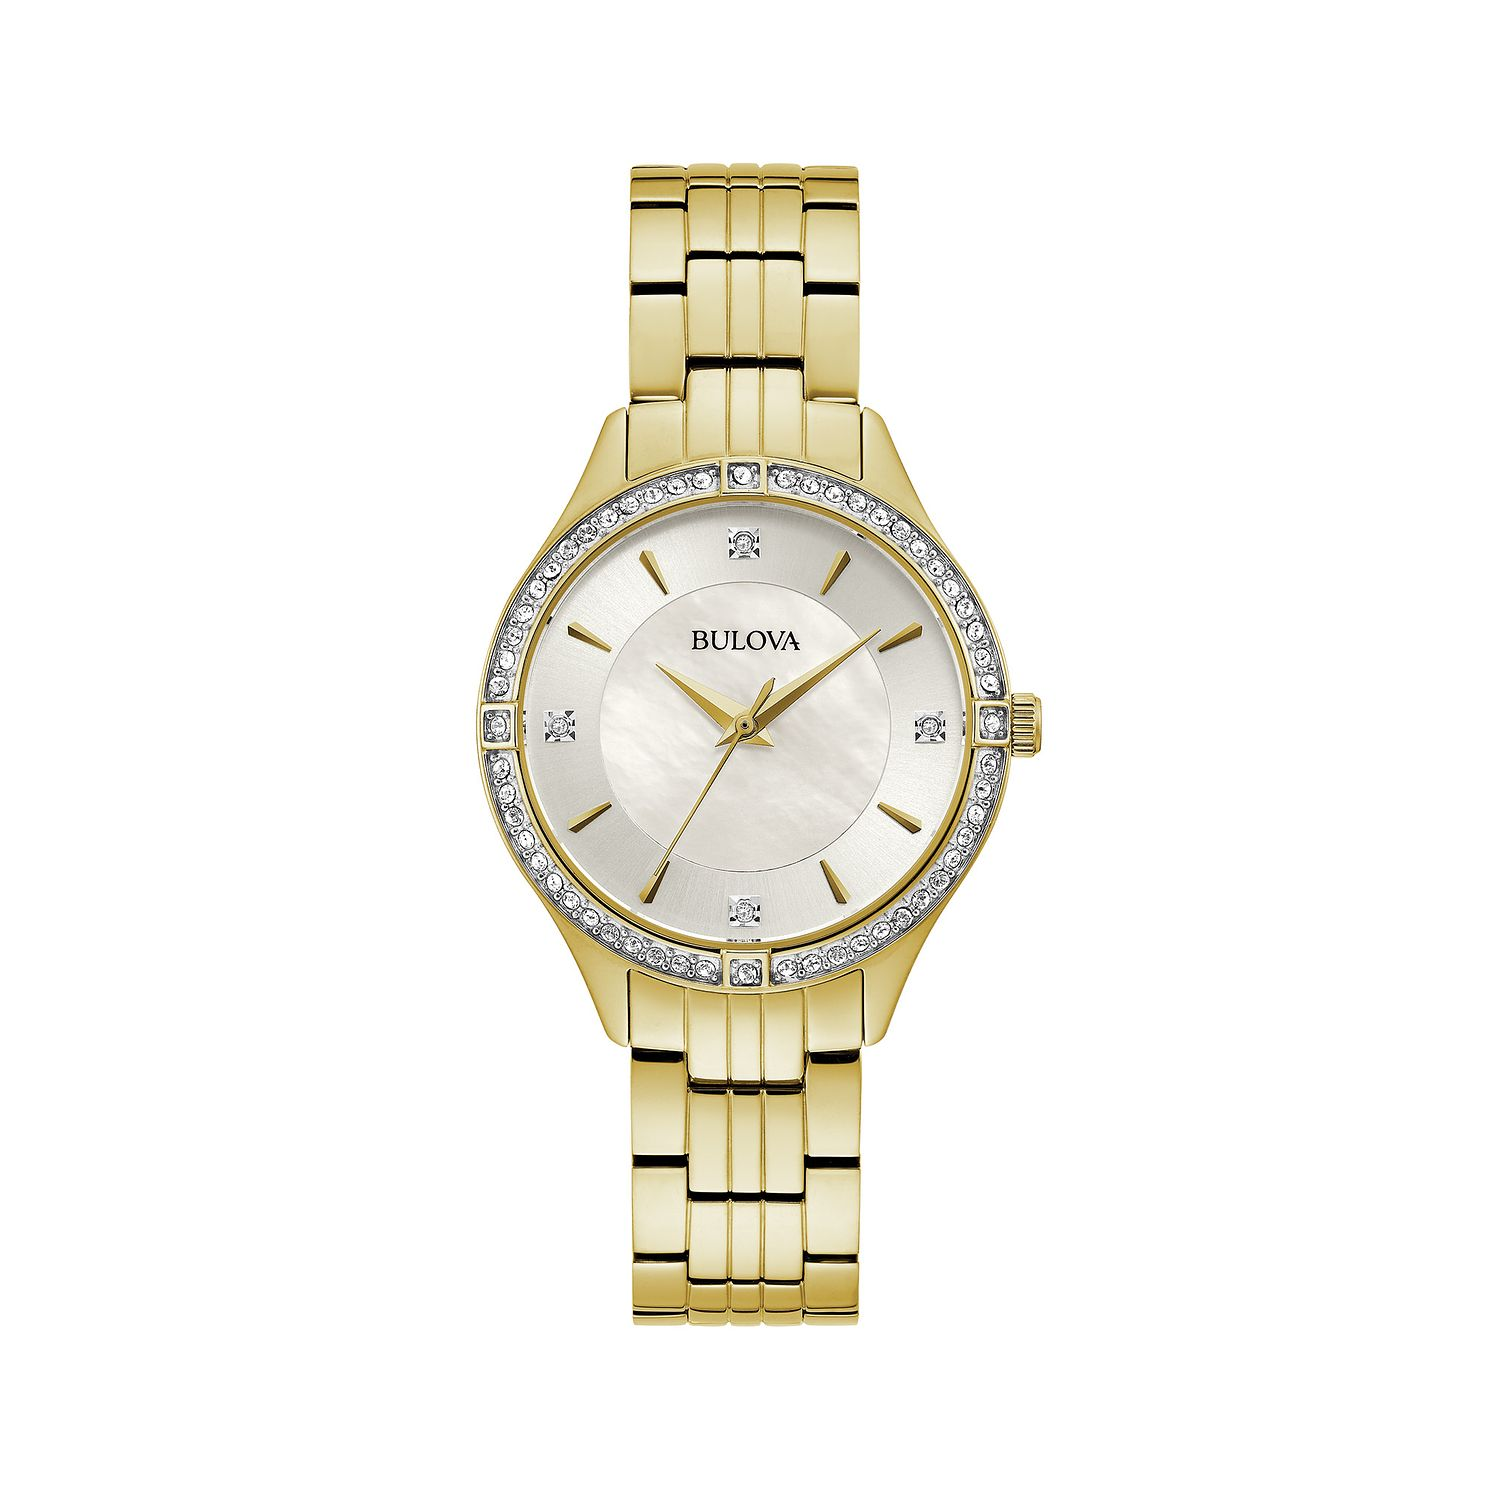 Bulova Crystal Ladies' Yellow Gold Tone Bracelet Watch - Product number 5237181